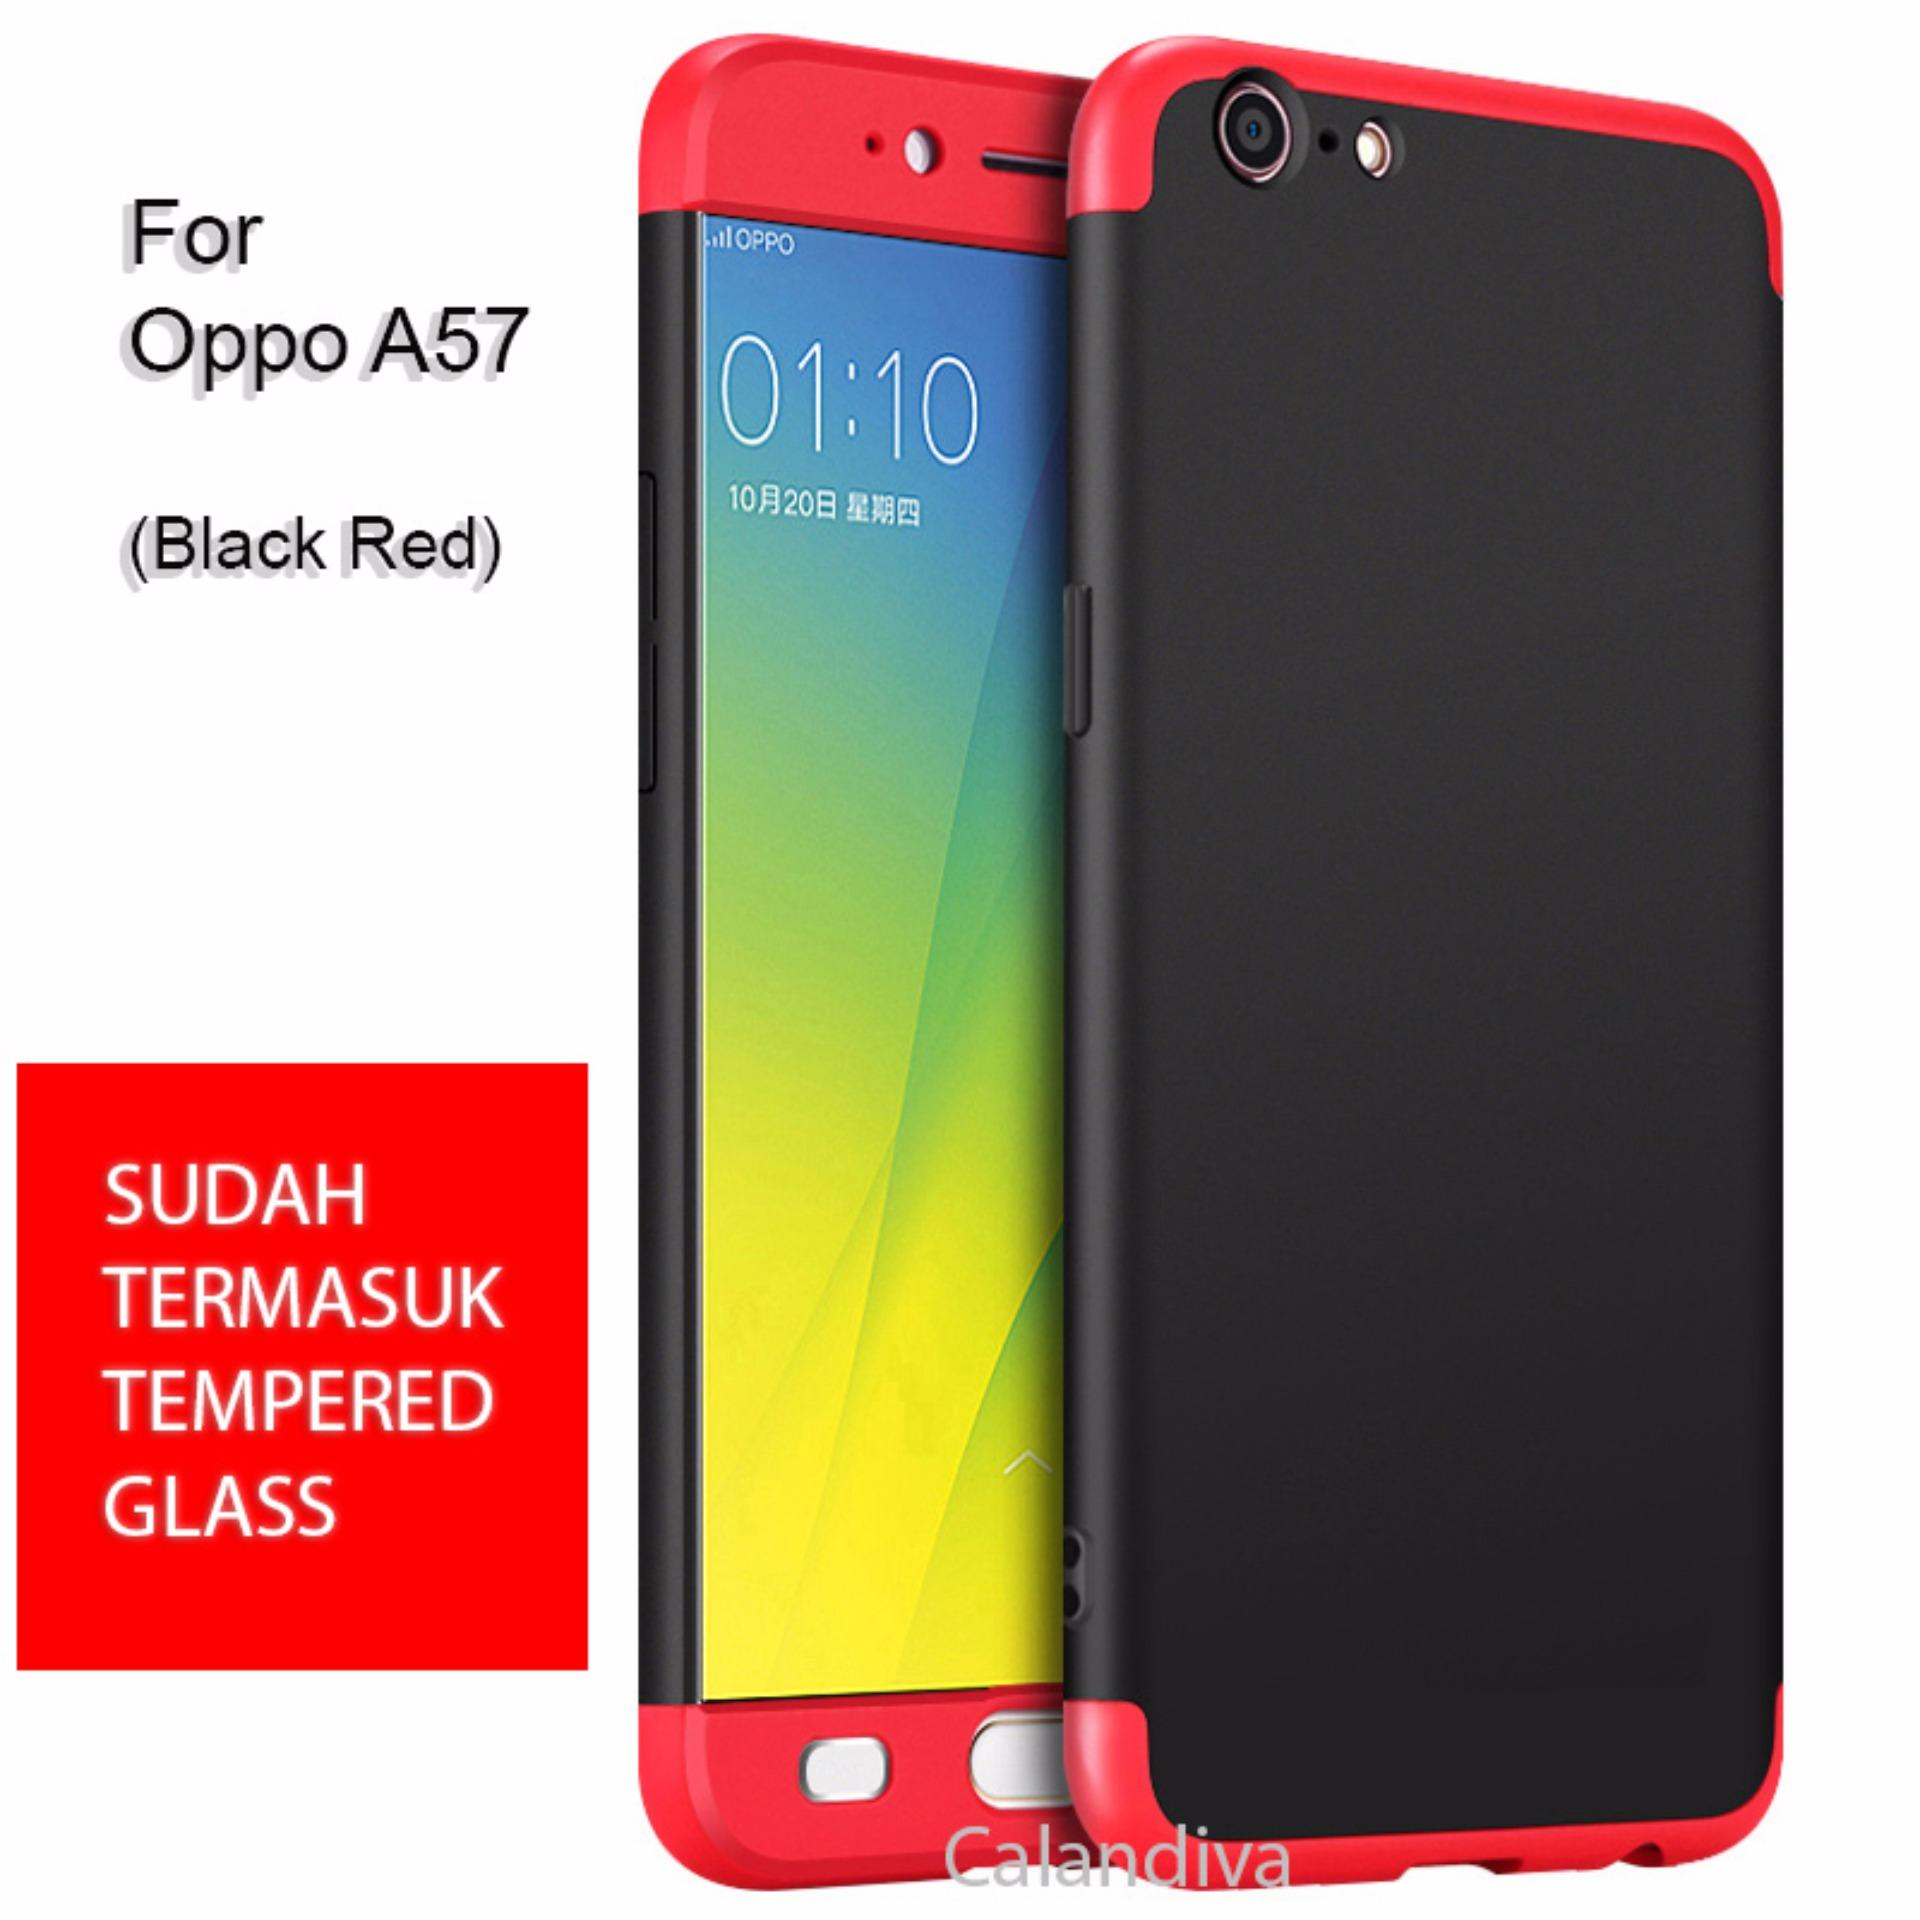 Dapatkan Segera Calandiva Premium Front Back 360 Degree Full Protection Case Quality Grade A For Oppo A57 Tempered Glass 2 5D Bening